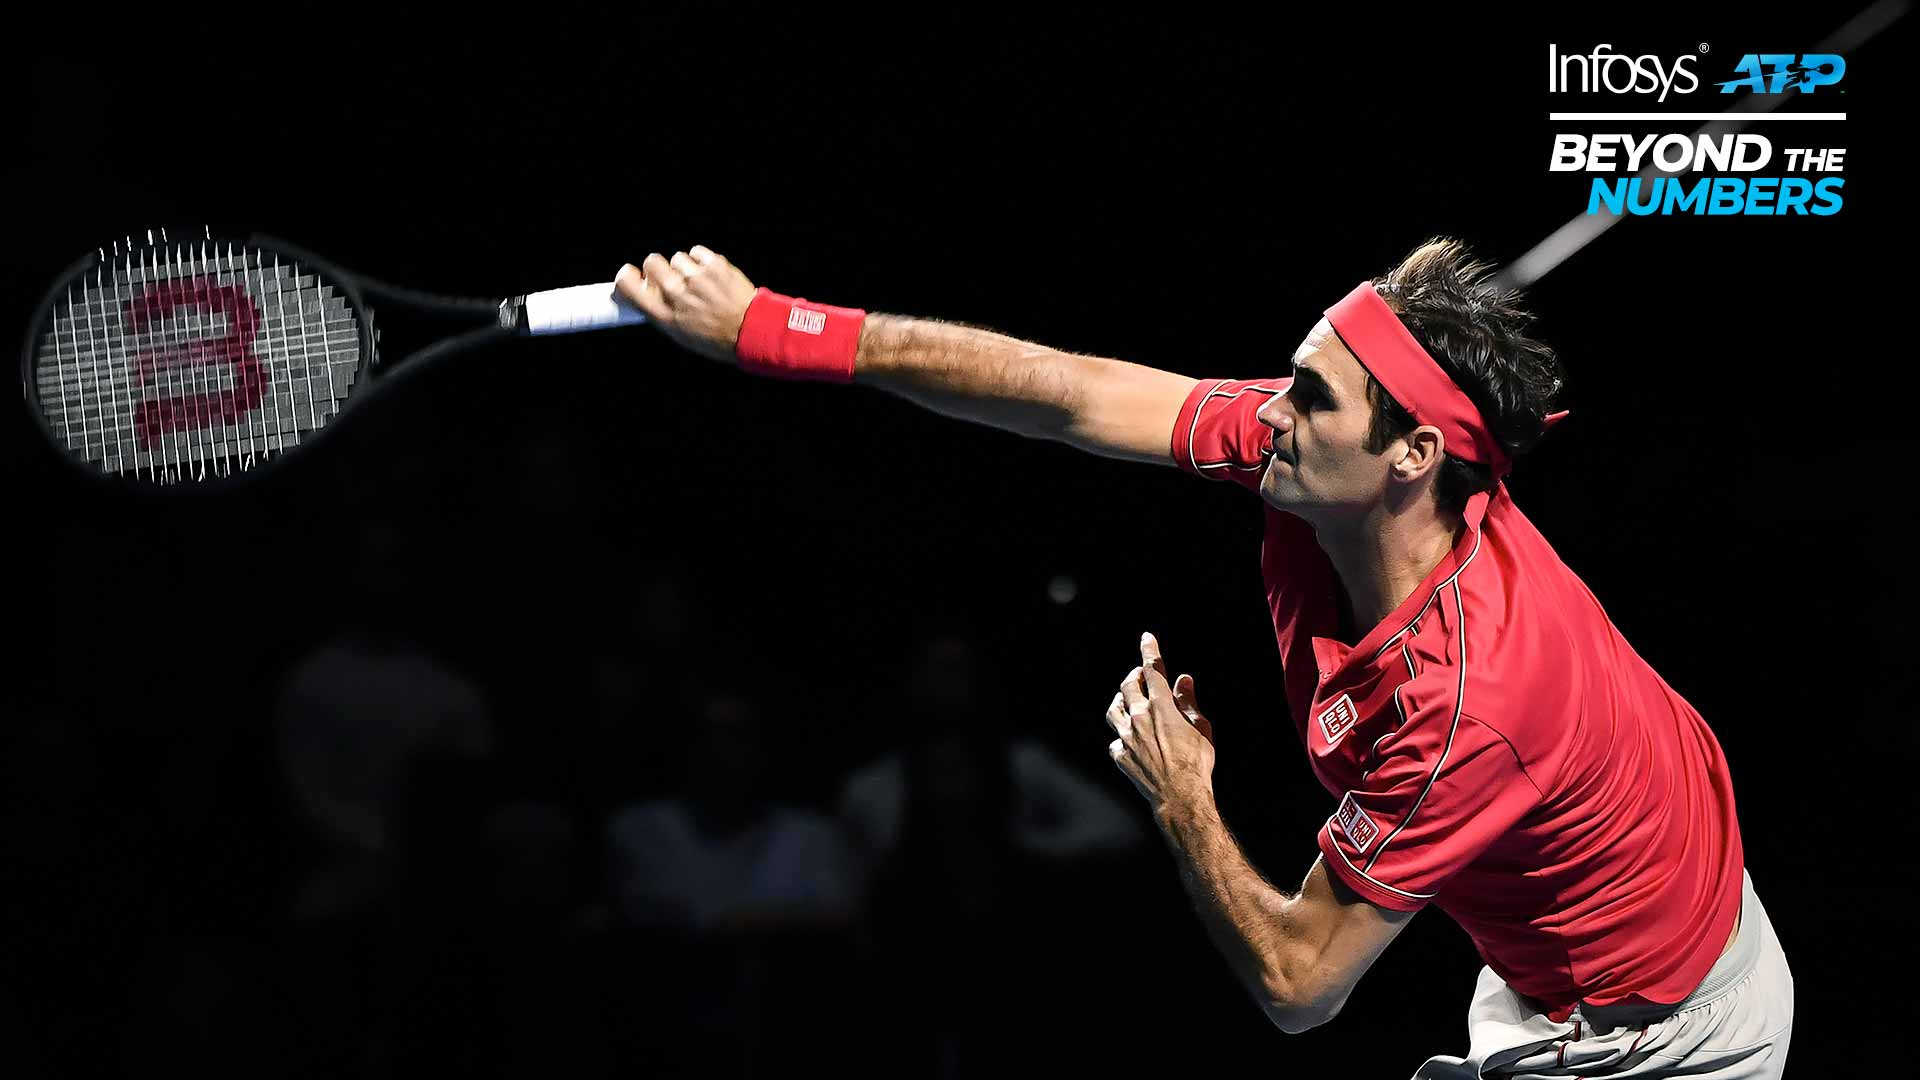 Roger Federer is one of the most consistent servers on the ATP Tour.